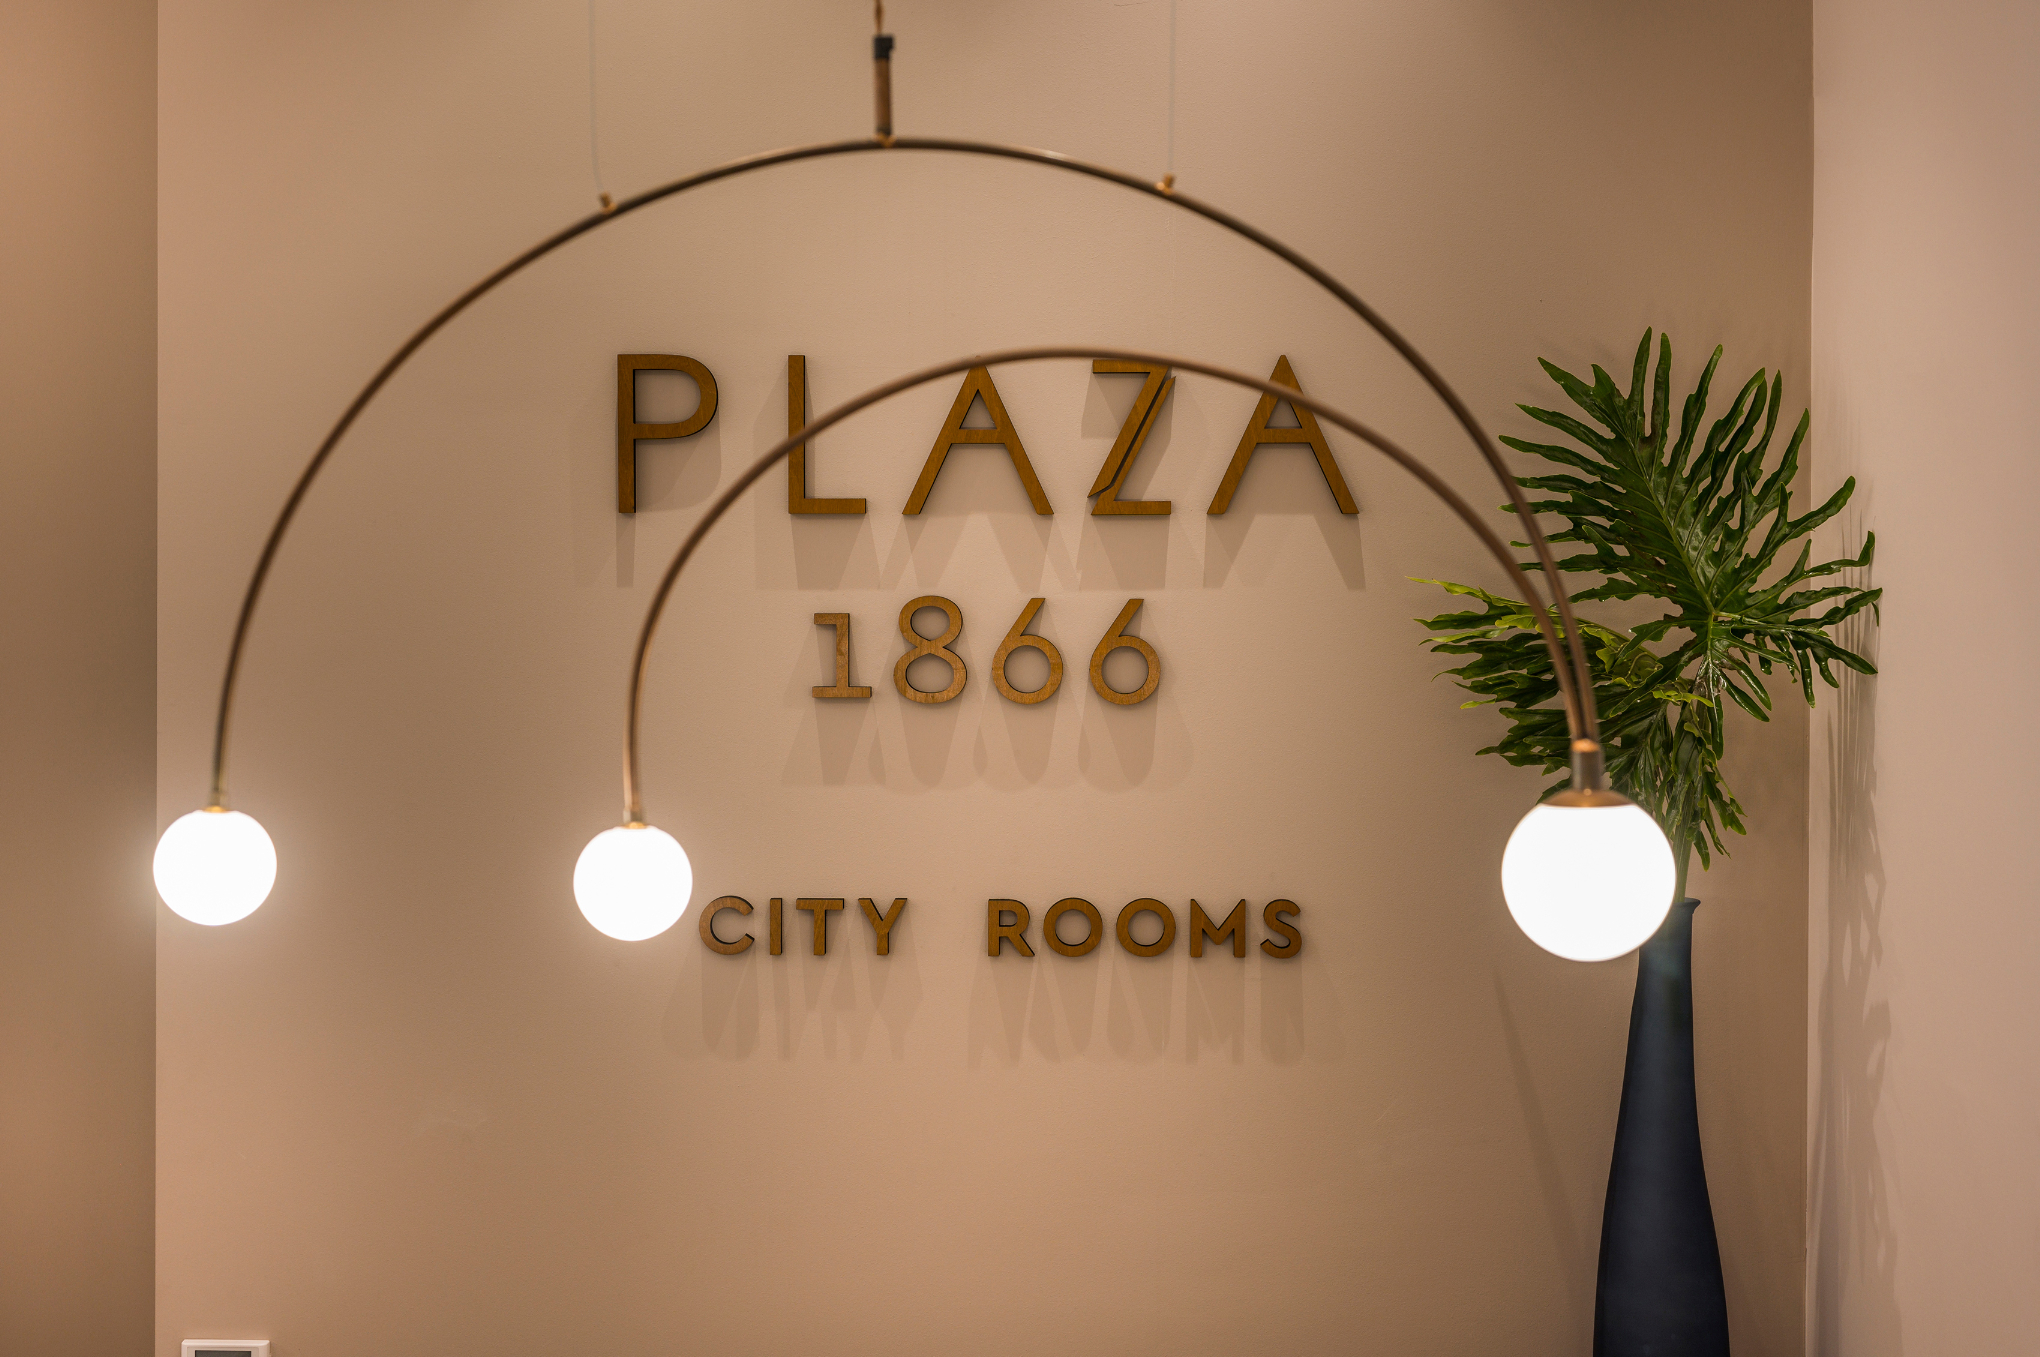 Plaza 1866 Superior Rooms & Suite Chania City